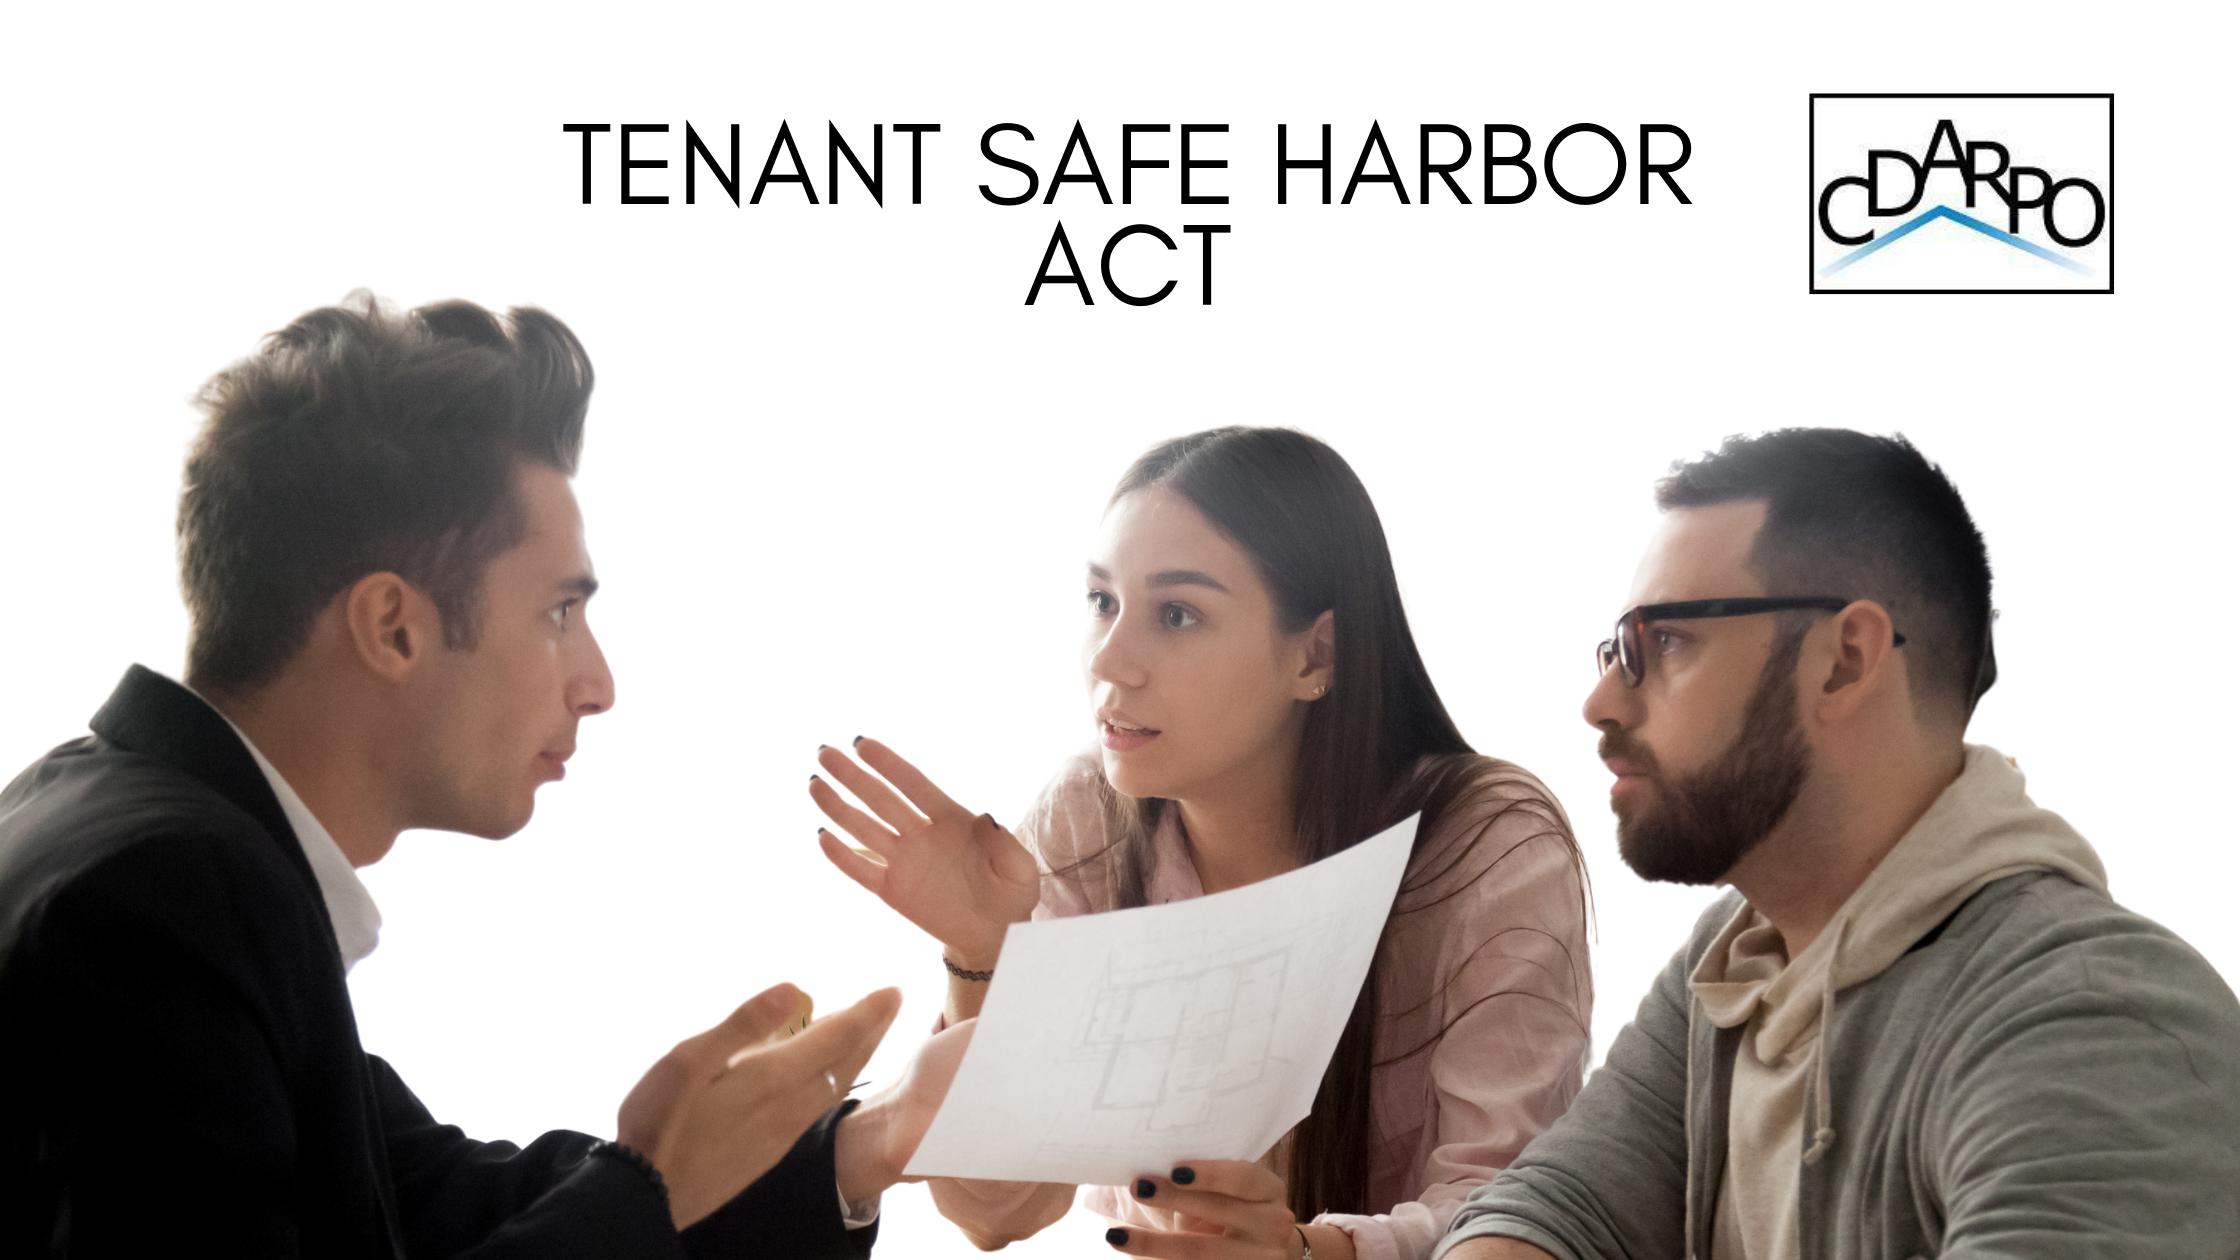 Tenant Safe Harbor Act